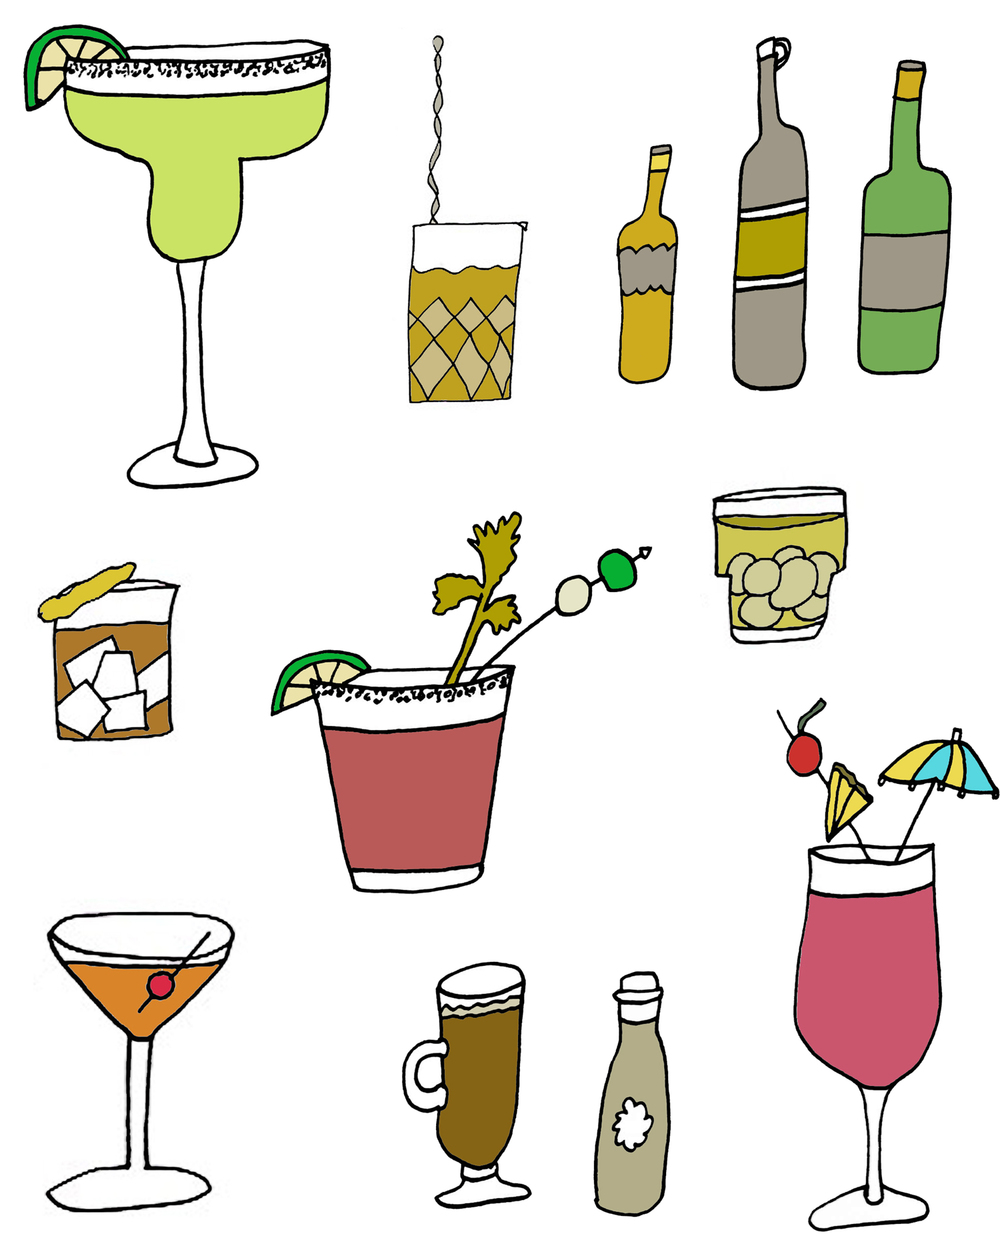 cocktail drink beverage drawing illustration nicole stevenson studio.jpg